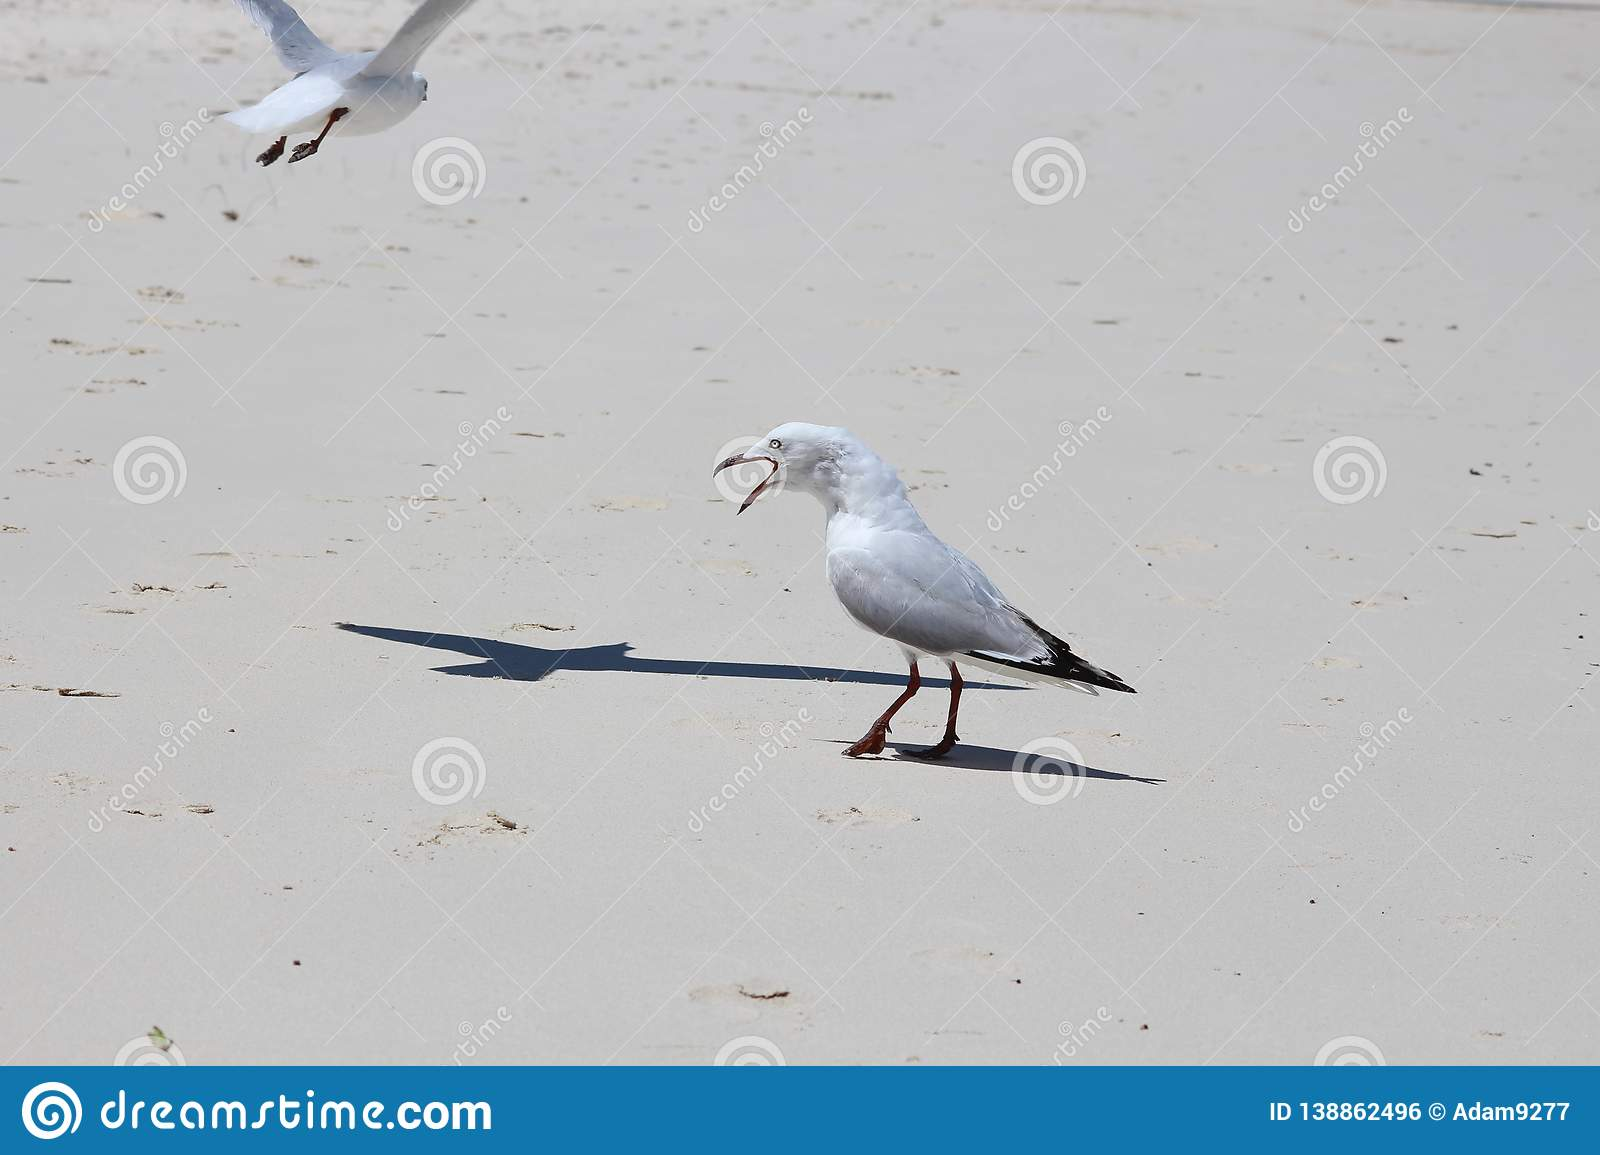 Funny seagull with open beak squawking at another seagull